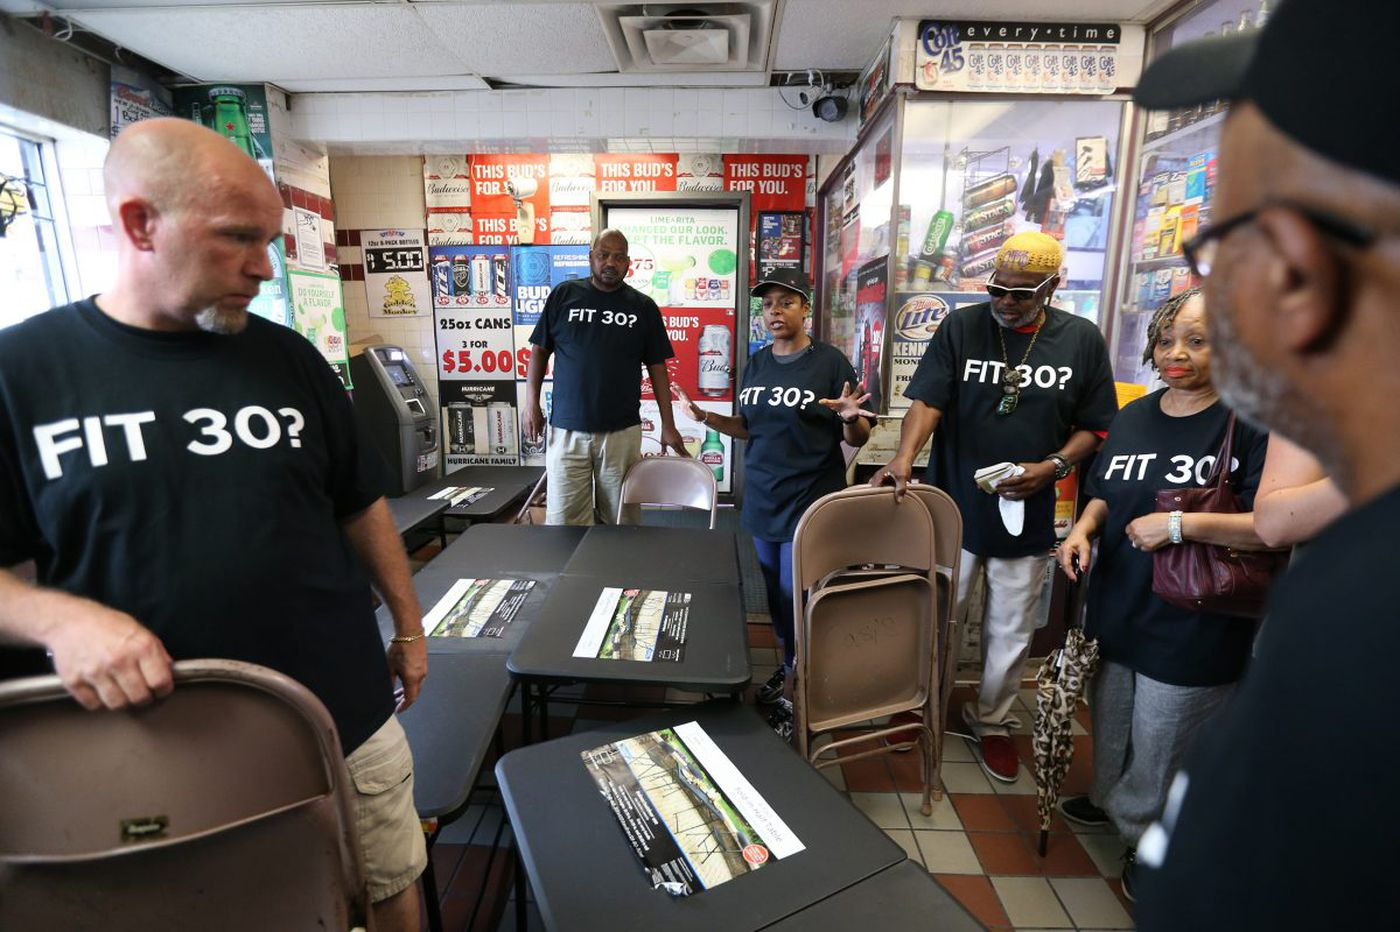 Philly lawmakers right to target stop-and-go nuisance bars